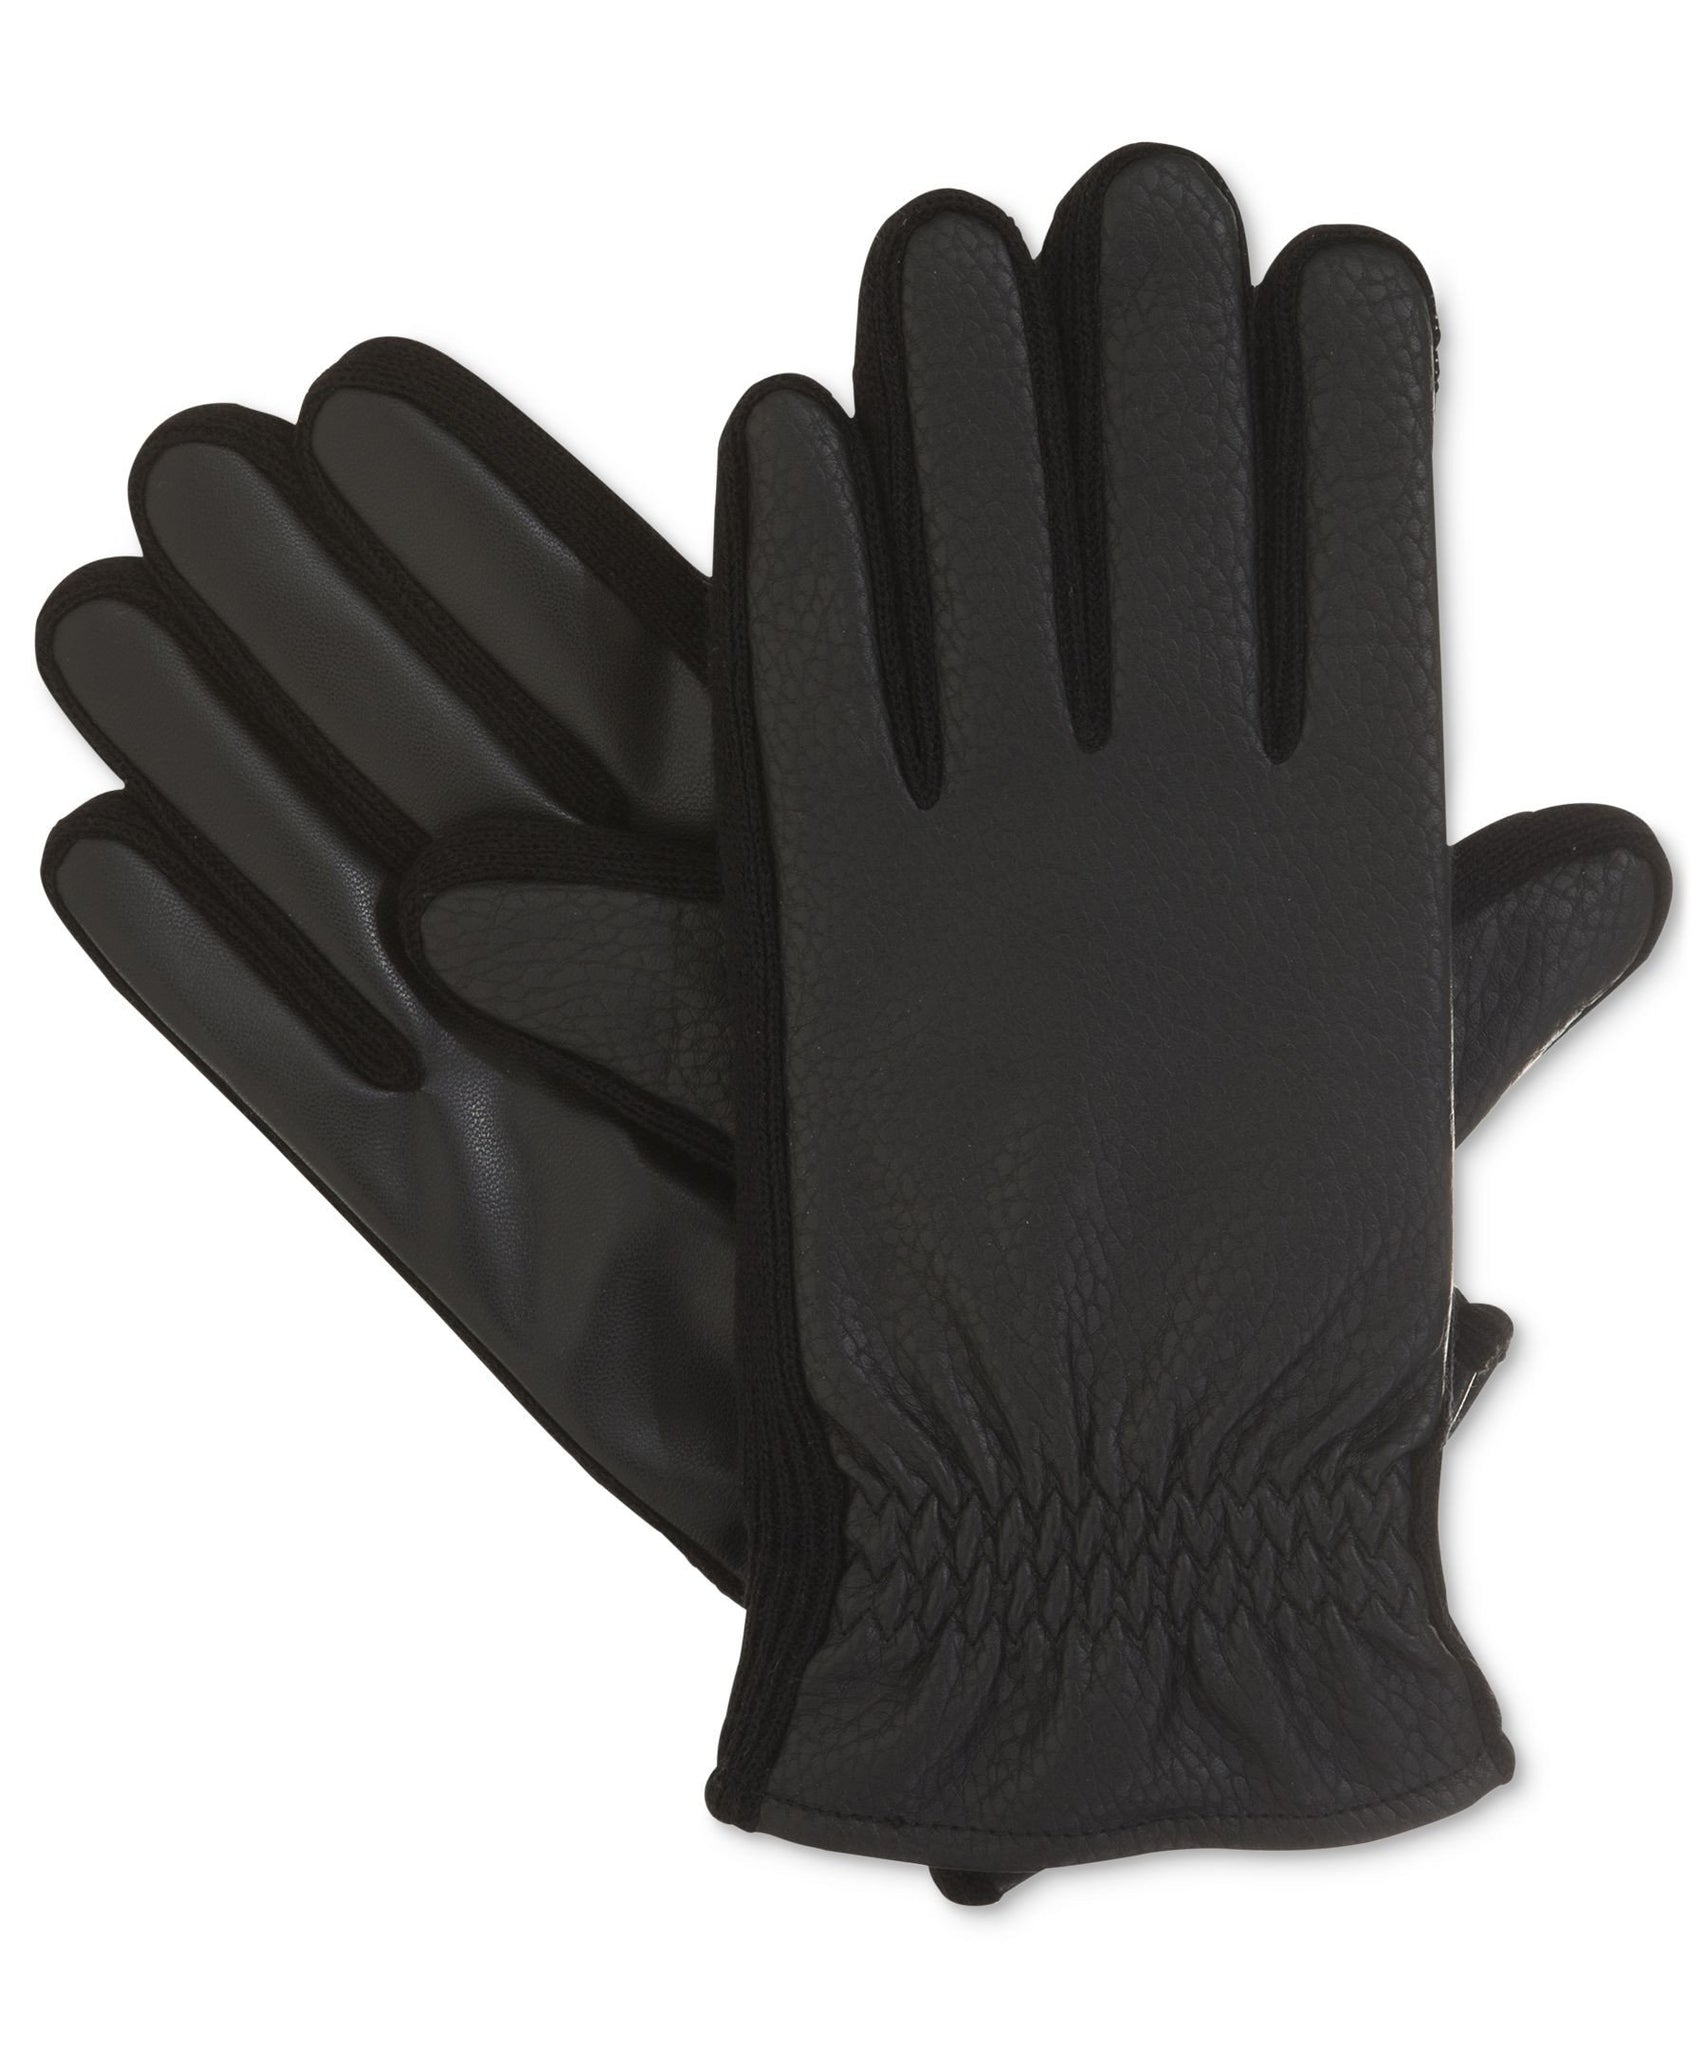 Isotoner Signature Black THERMAflex™ SmarTouch Textured Stretch Glove With Gathered Wrist